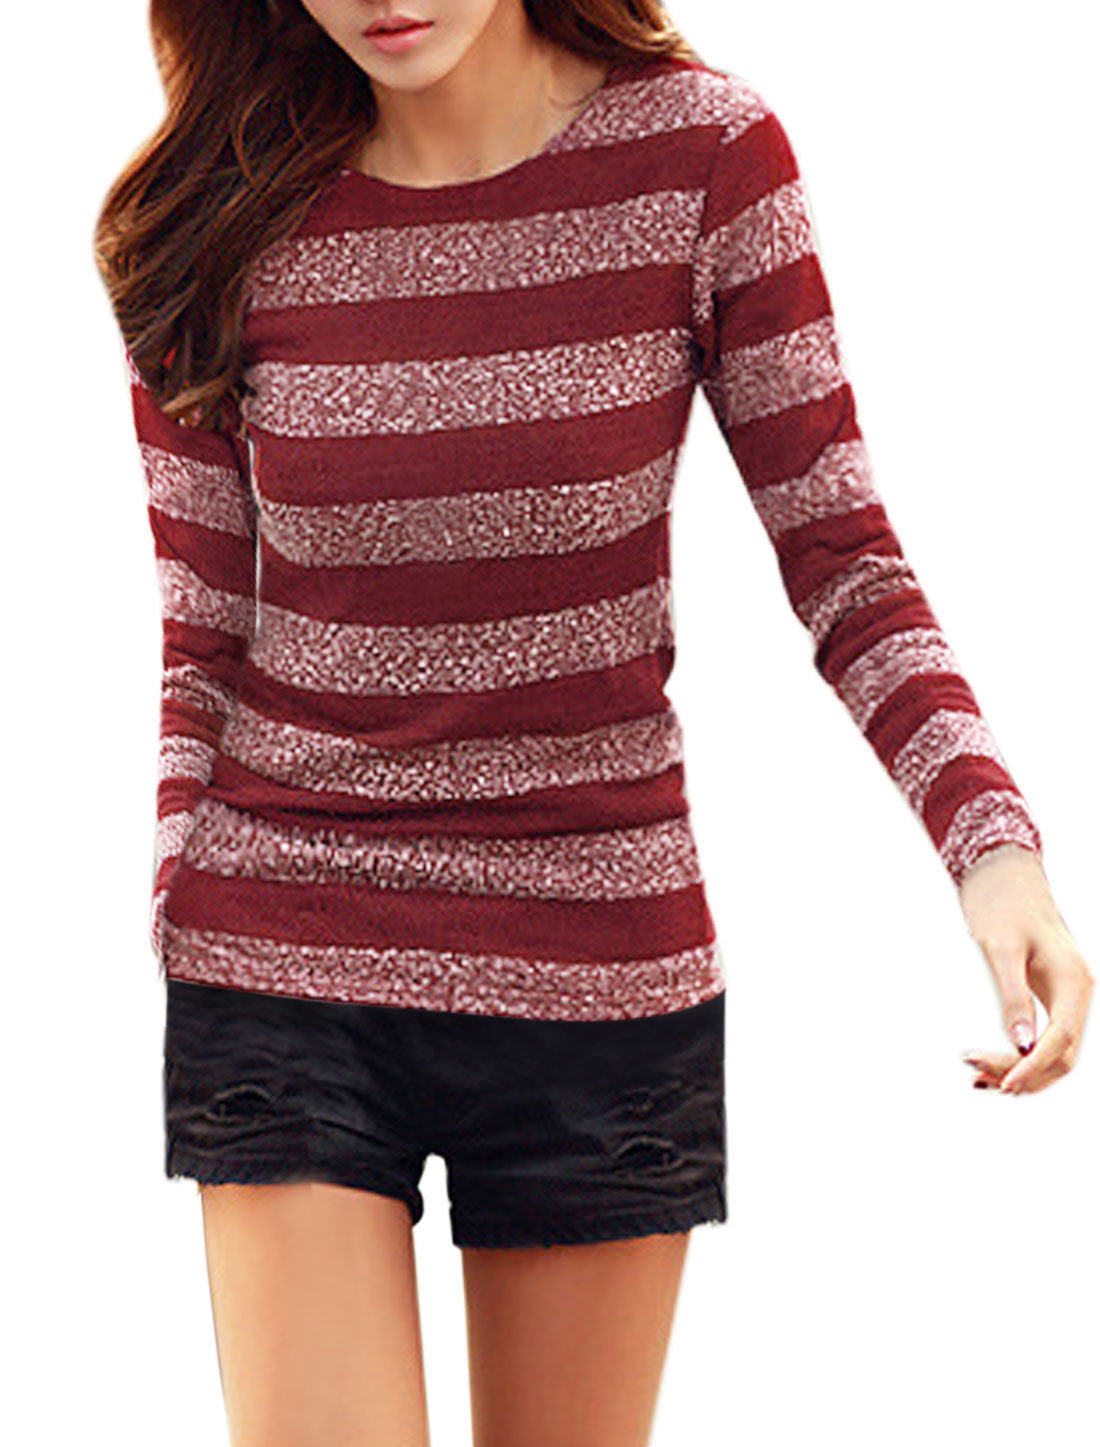 Women Round Neck Stripes Slim Fit Knit Shirt Red XS